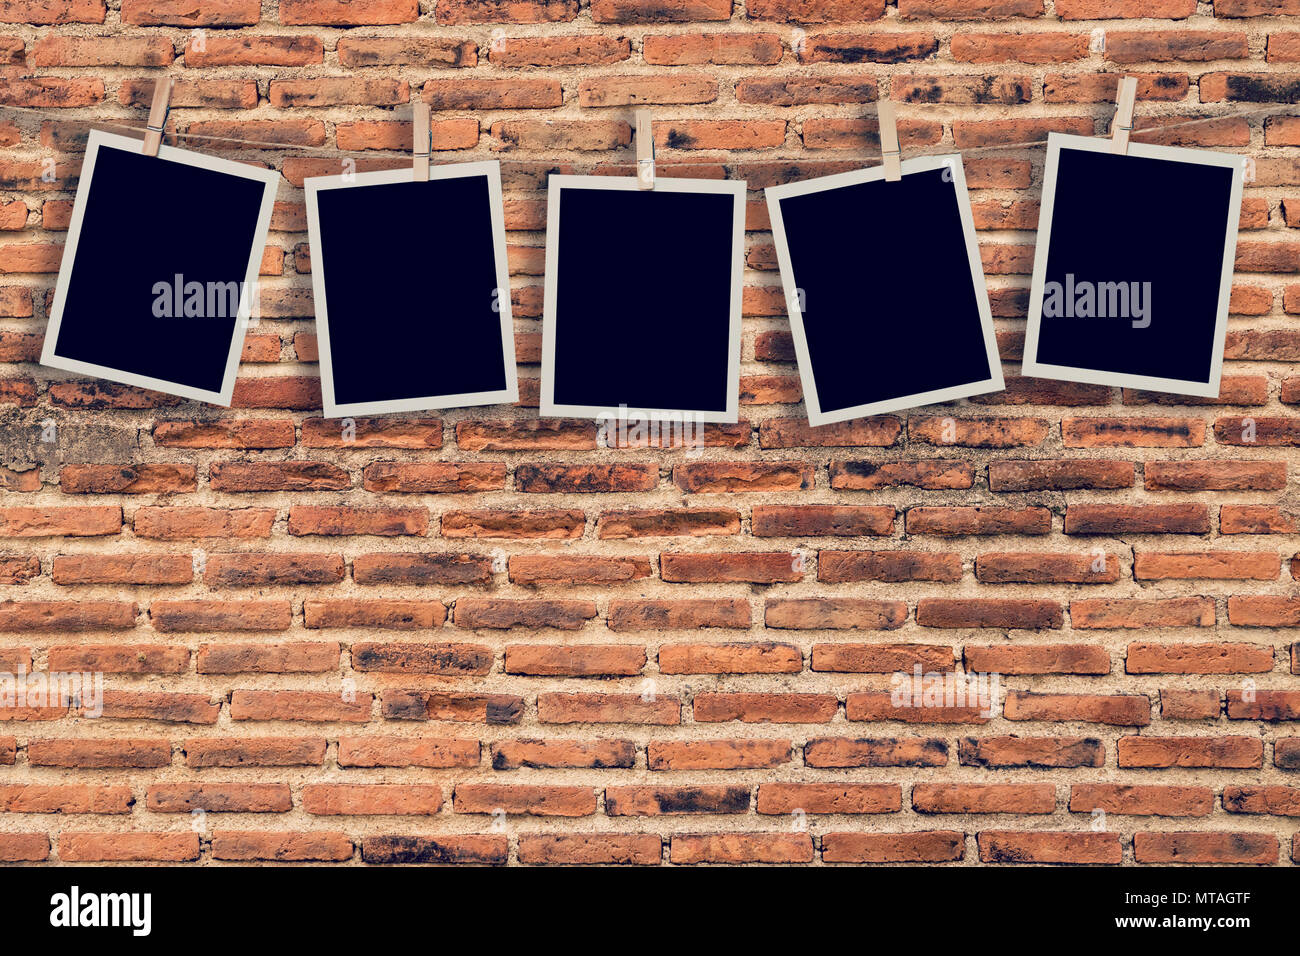 Five Instant Photo Hanging On Old Brick Wall Background And